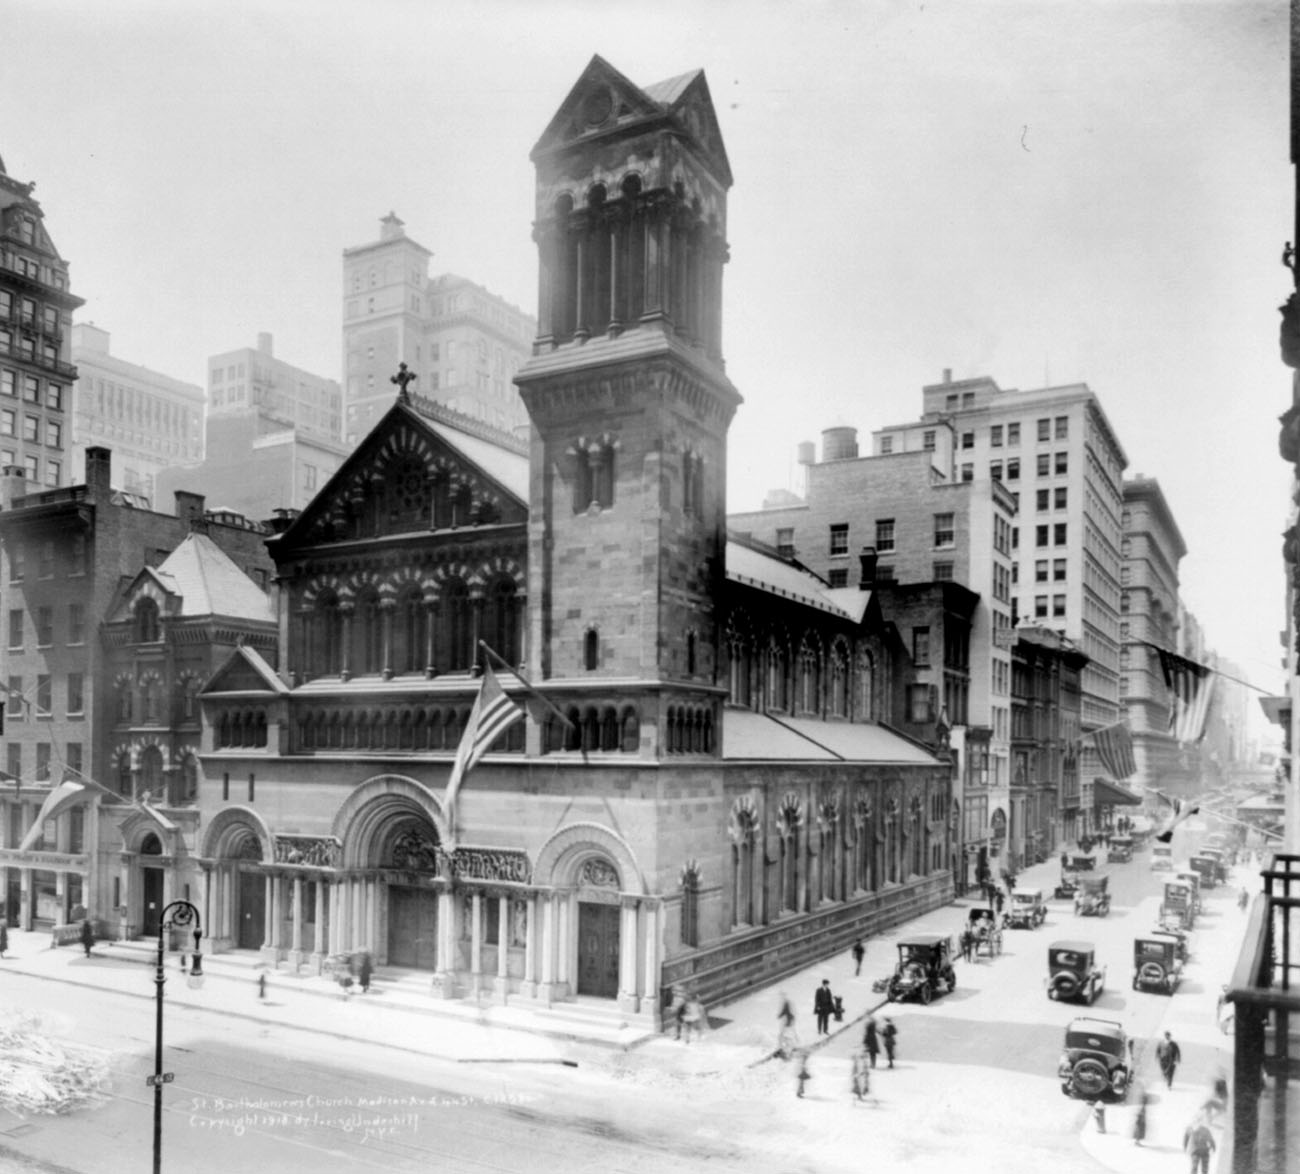 St. Bartholomew's Episcopal Church, located from 1872-1918 on Madison Avenue and 44th Street - New York City